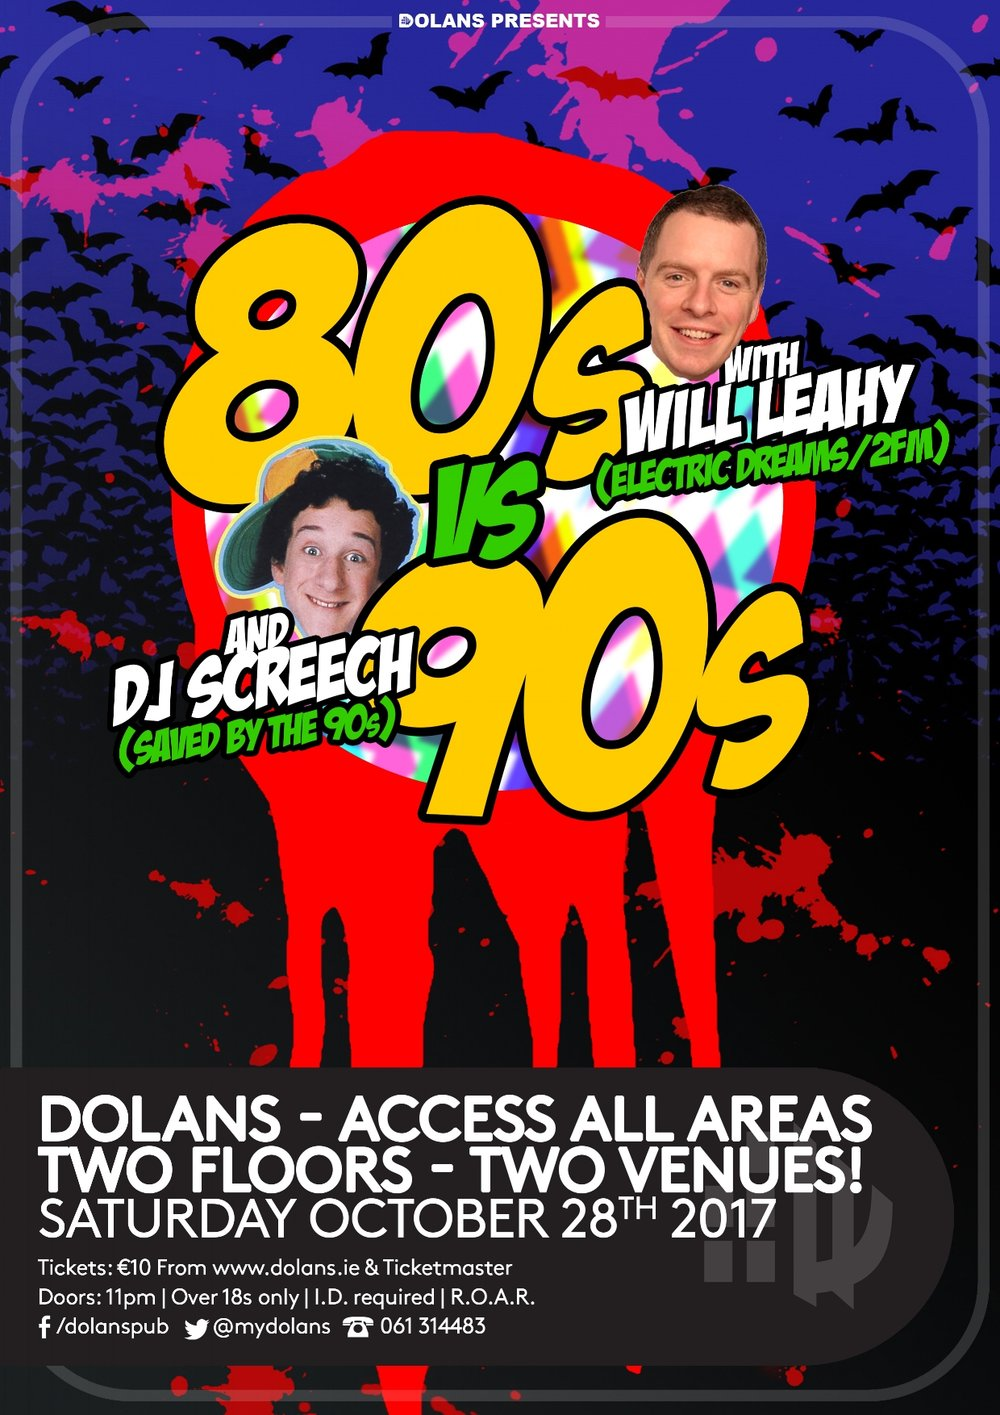 80svs90s night club with 2fm's Will Leahy spinning hits from the 80's and DJ Screech from the 90's